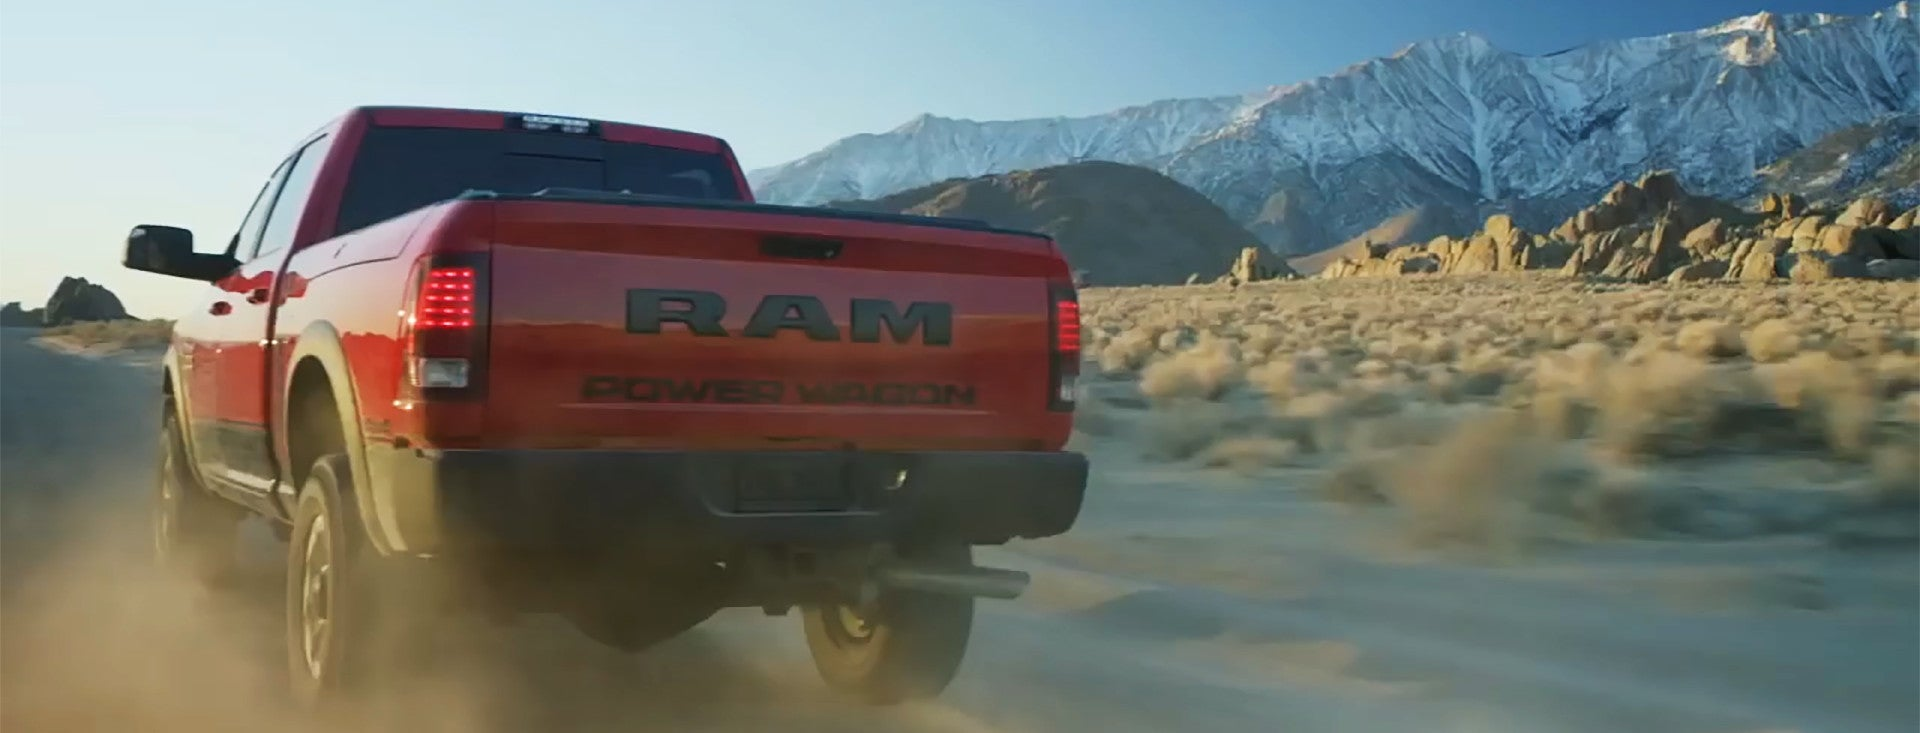 Home | Dodge RAM Dealership in Odessa, TX | All American